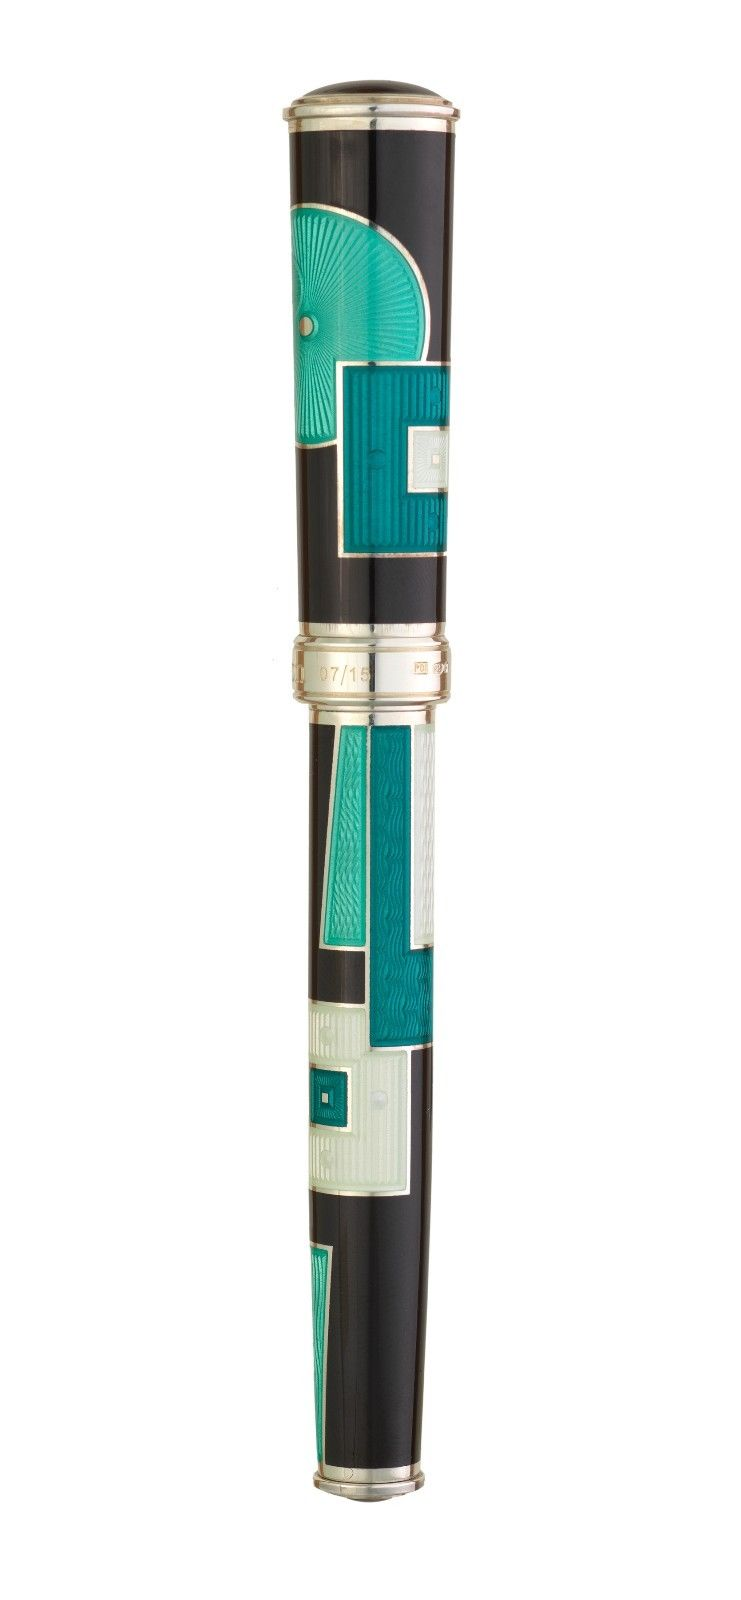 David Oscarson 15th Anniversary American Art Deco Black Teal Rollerball Pen